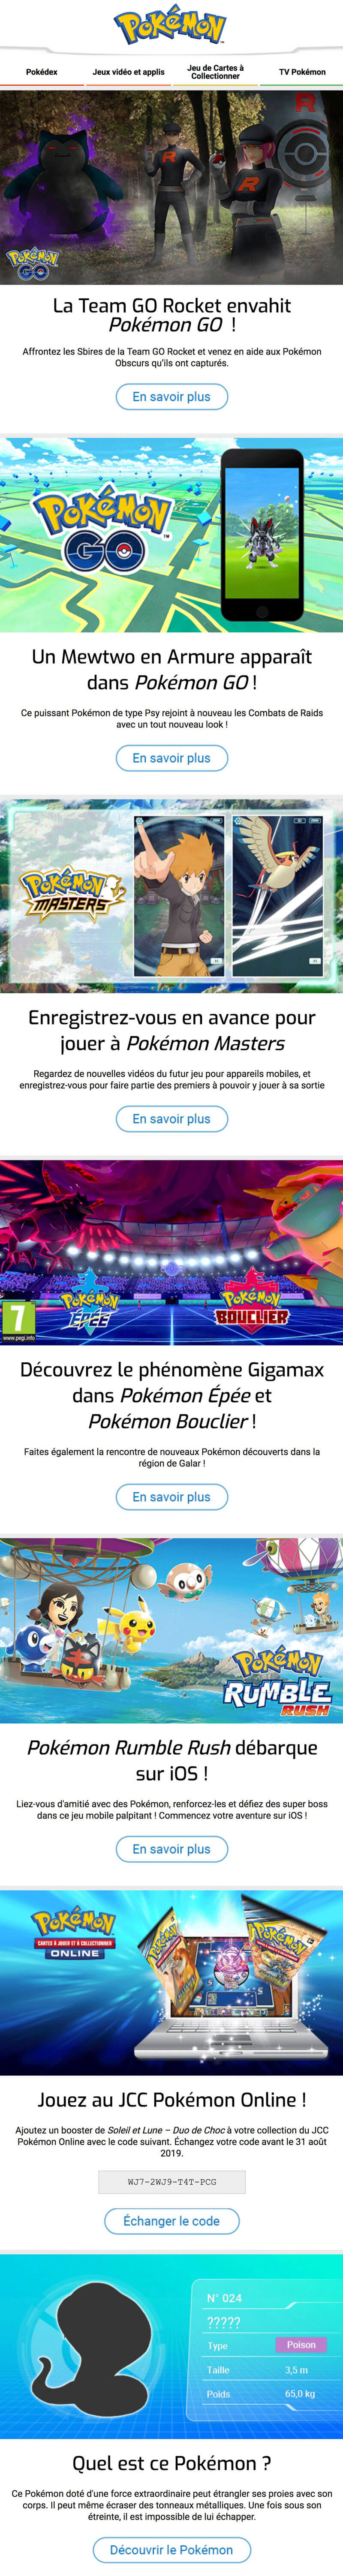 Newsletter Pokémon